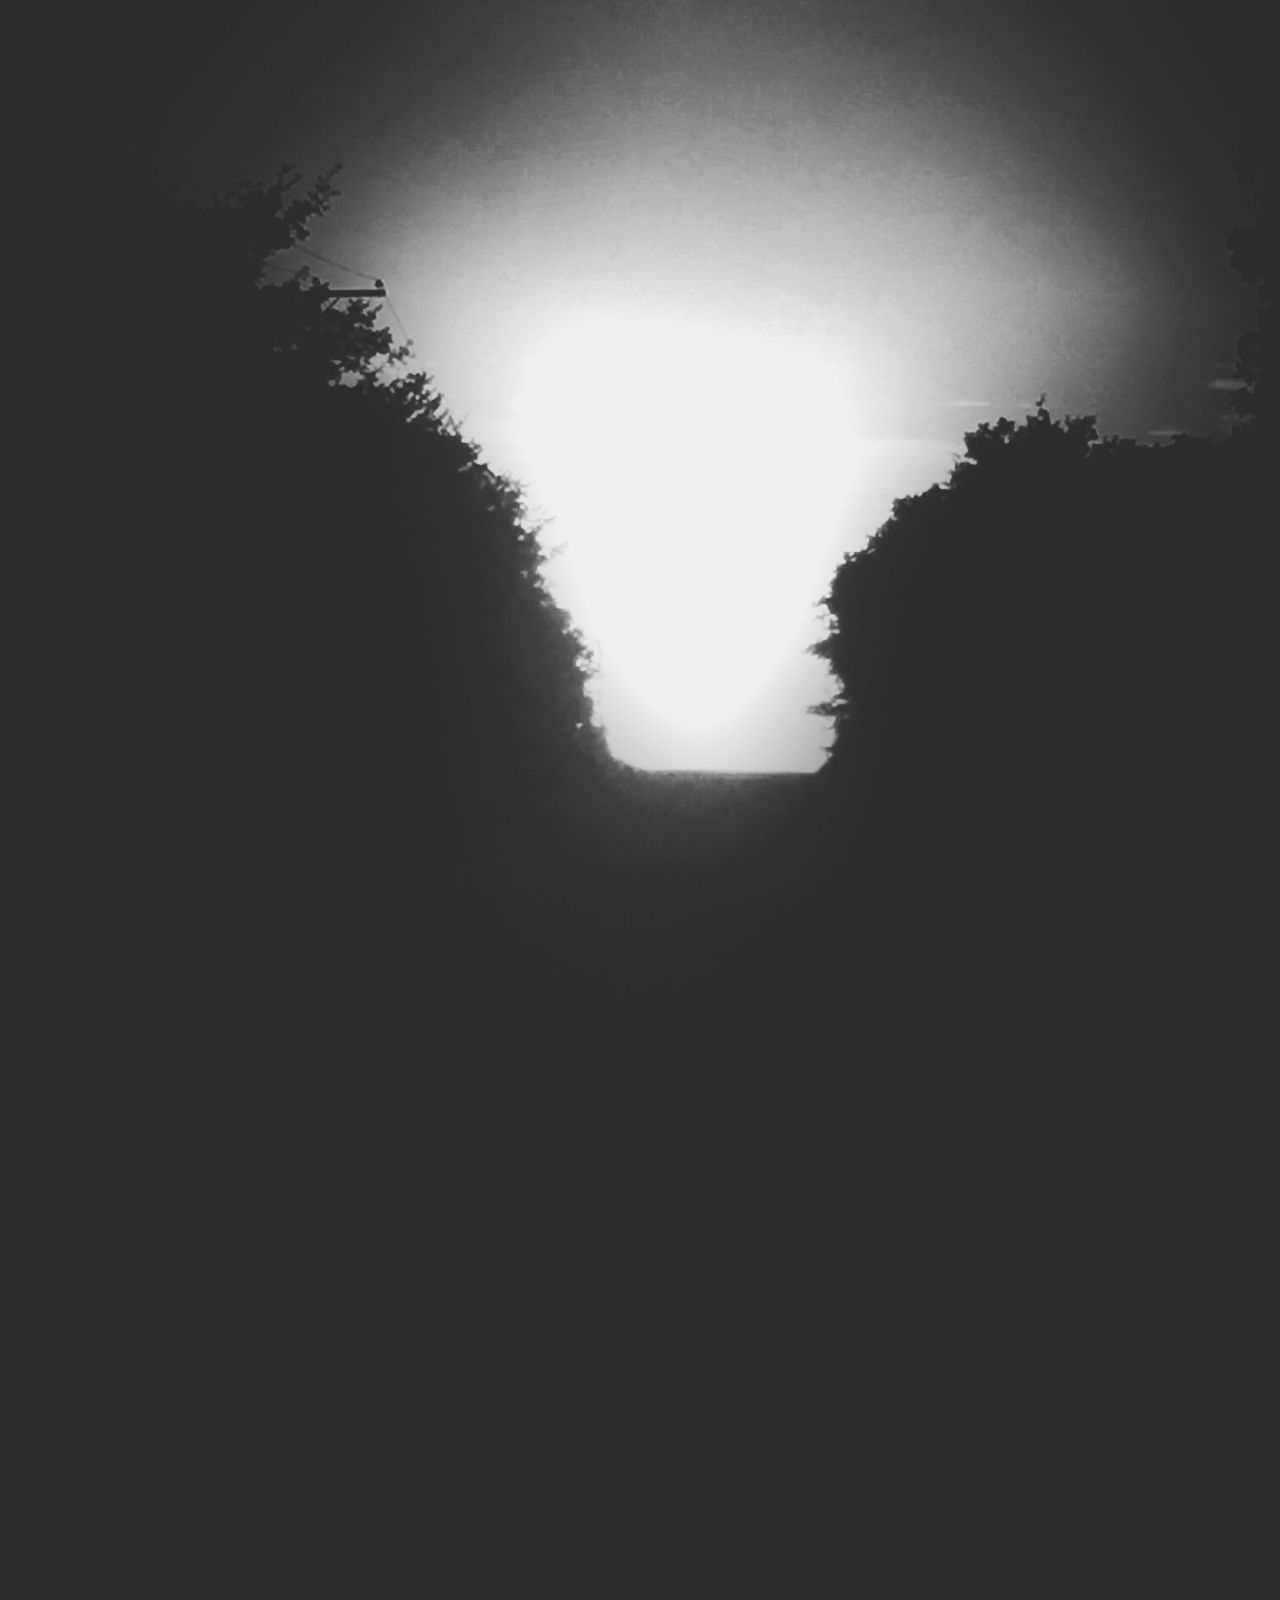 Unknown Dark Outline Sky Scenics Silhouette Copy Space IPhone The Drive Overnight Success Backgrounds Blackandwhite Night Light Light And Shadow Darkness And Light Road Country Country Road Journey Path Treelined Trees Backroads Dirt Road